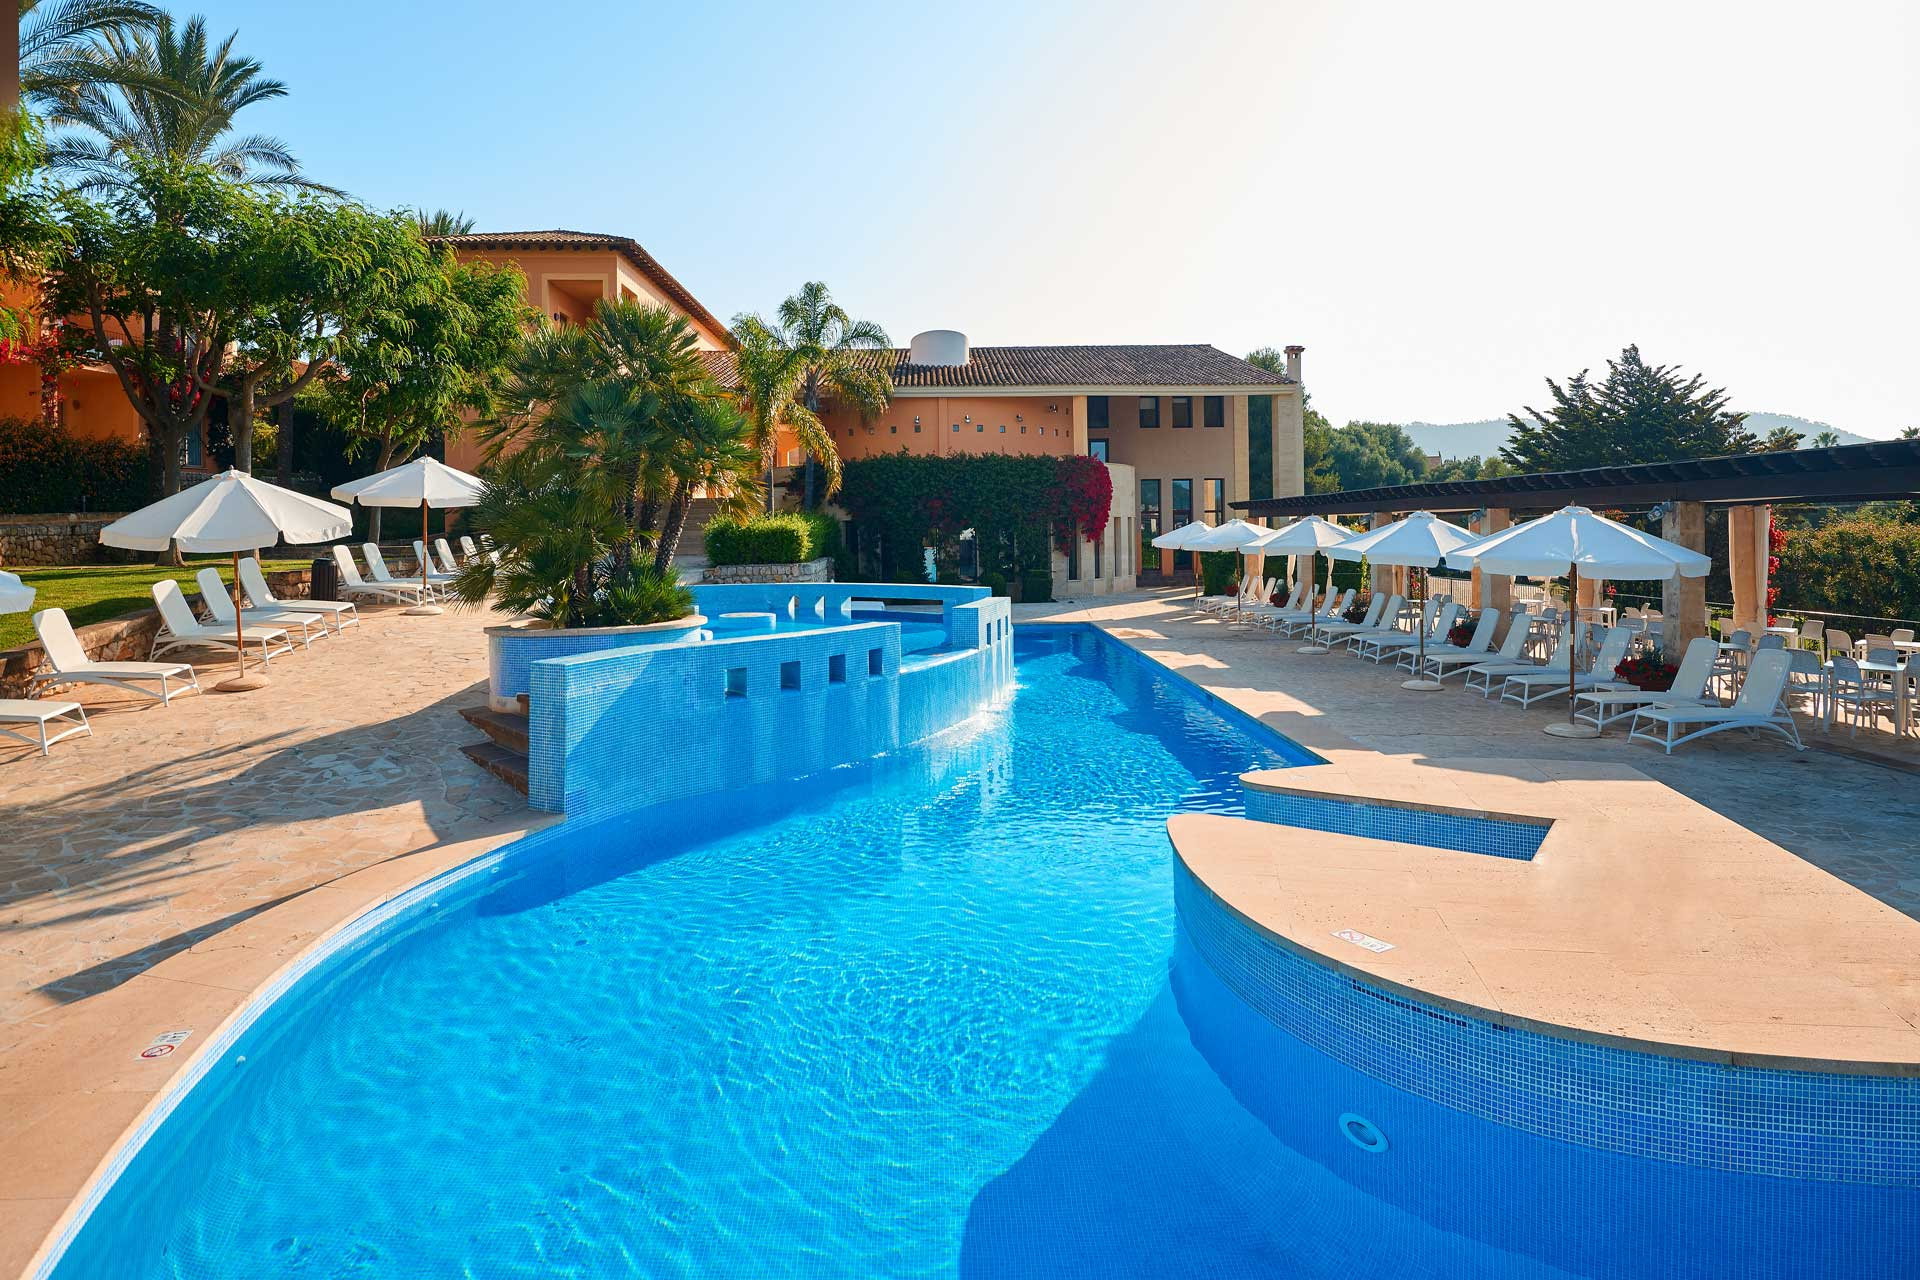 Finca-Hotel Sentido Pula Suites - Swimming pool